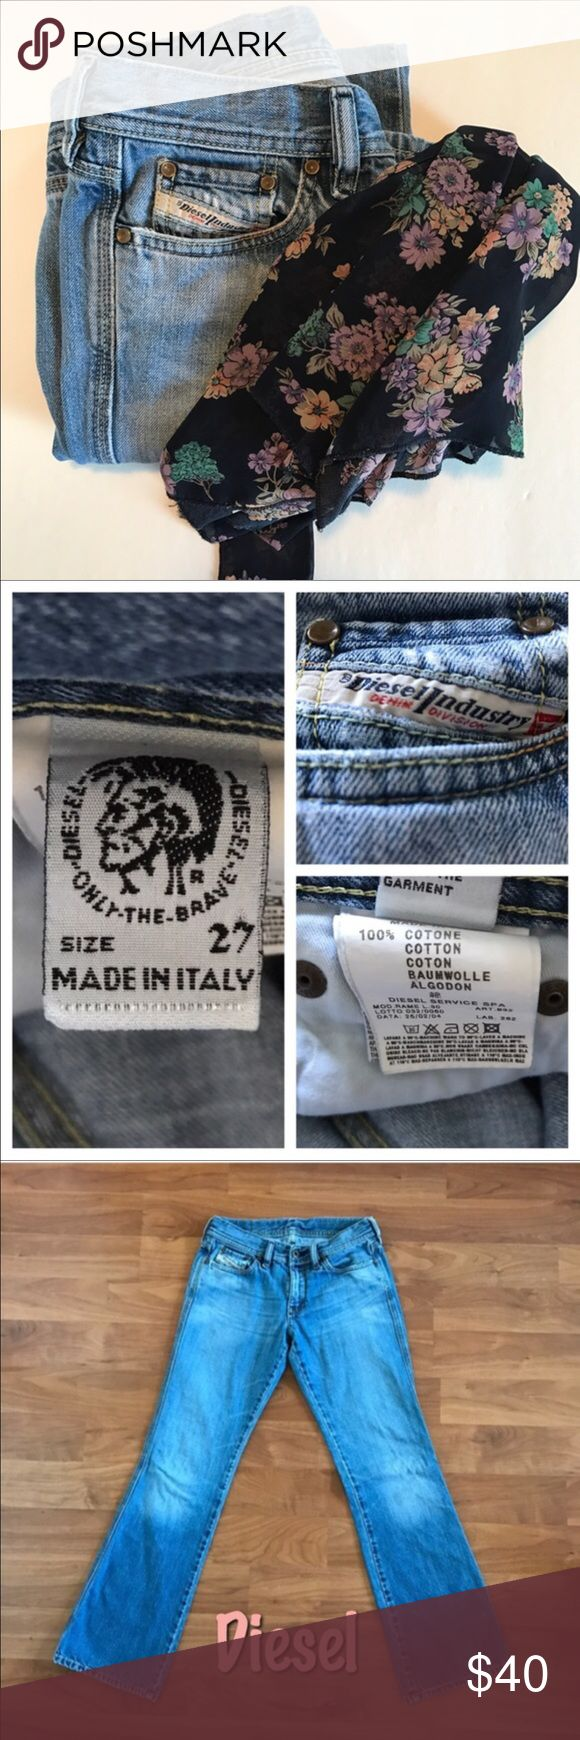 "Diesel boot Cut Jeans Diesel boot cut low rise jeans. Size 27, Excellent condition, Comes from a smoke free home.    Measurements: Inseam: 29 1/2"" Outseam: 36"" Waist: 26"" Leg Opening: 17"" Front Rise: 8"" Back Rise: 10 1/2"" Hips: 32"" Diesel Jeans Boot Cut"